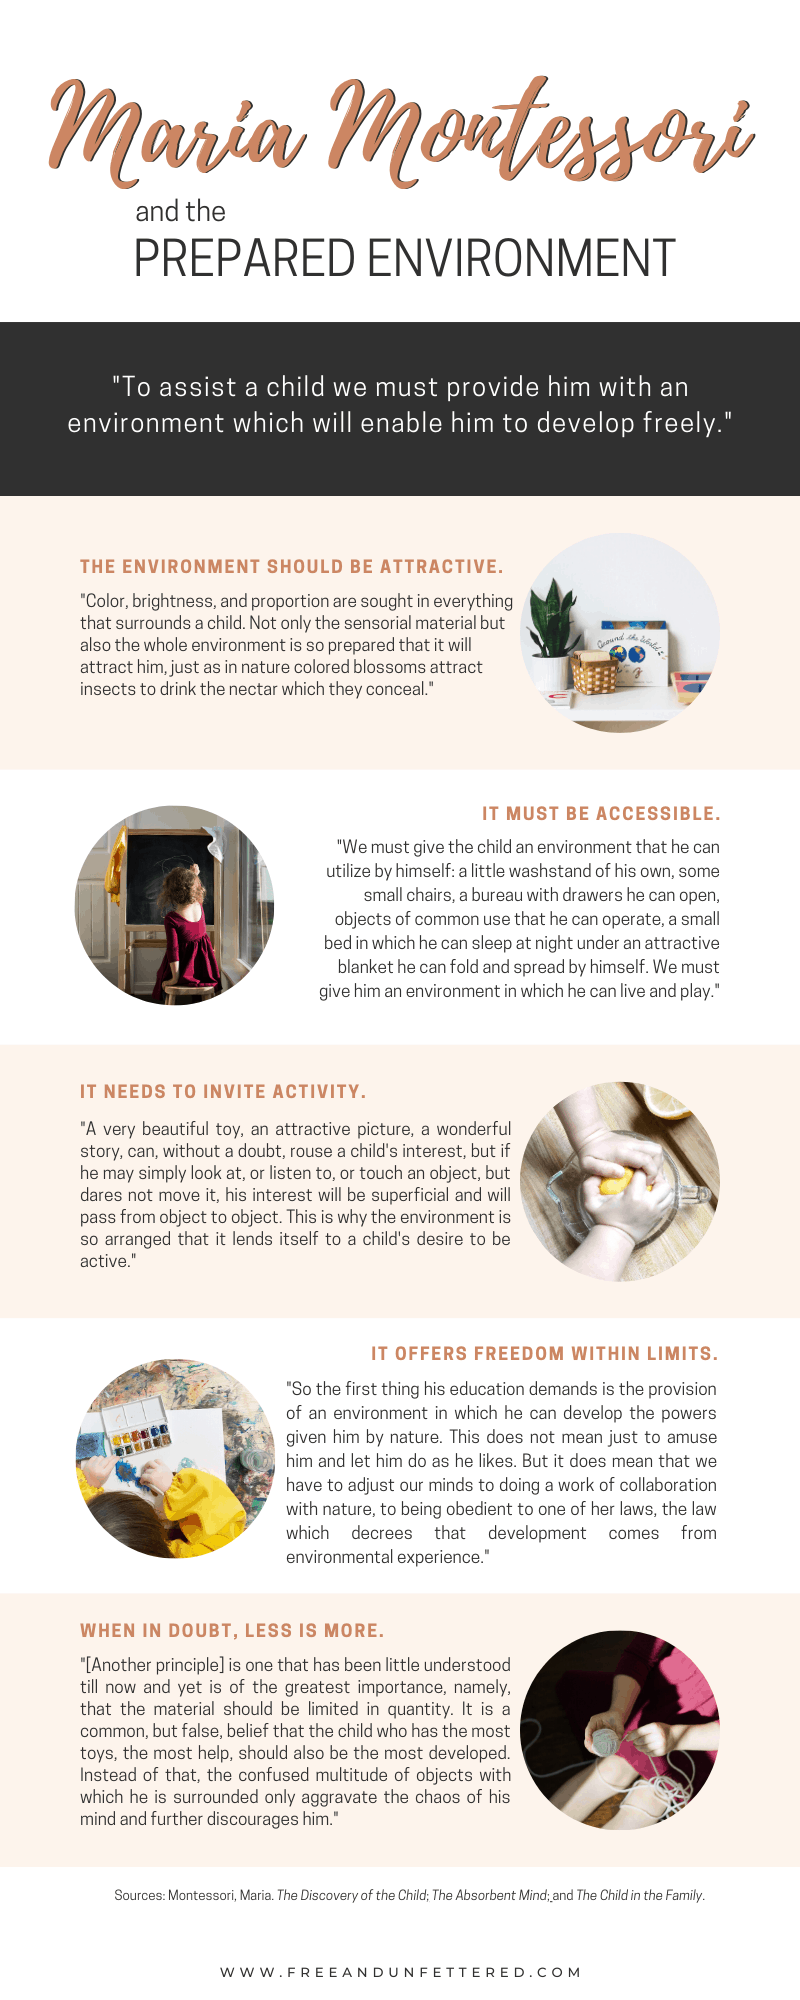 Interested in learning more about how to prepare an environment for children that fosters independent learning and exploration? Visit www.freeandunfettered.com to view our Montessori-inspired schoolroom and playroom and grab a free copy of our guide to Designing Spaces with Children. #montessoriathome #preparedenvironment #kidsroom #childledlearning